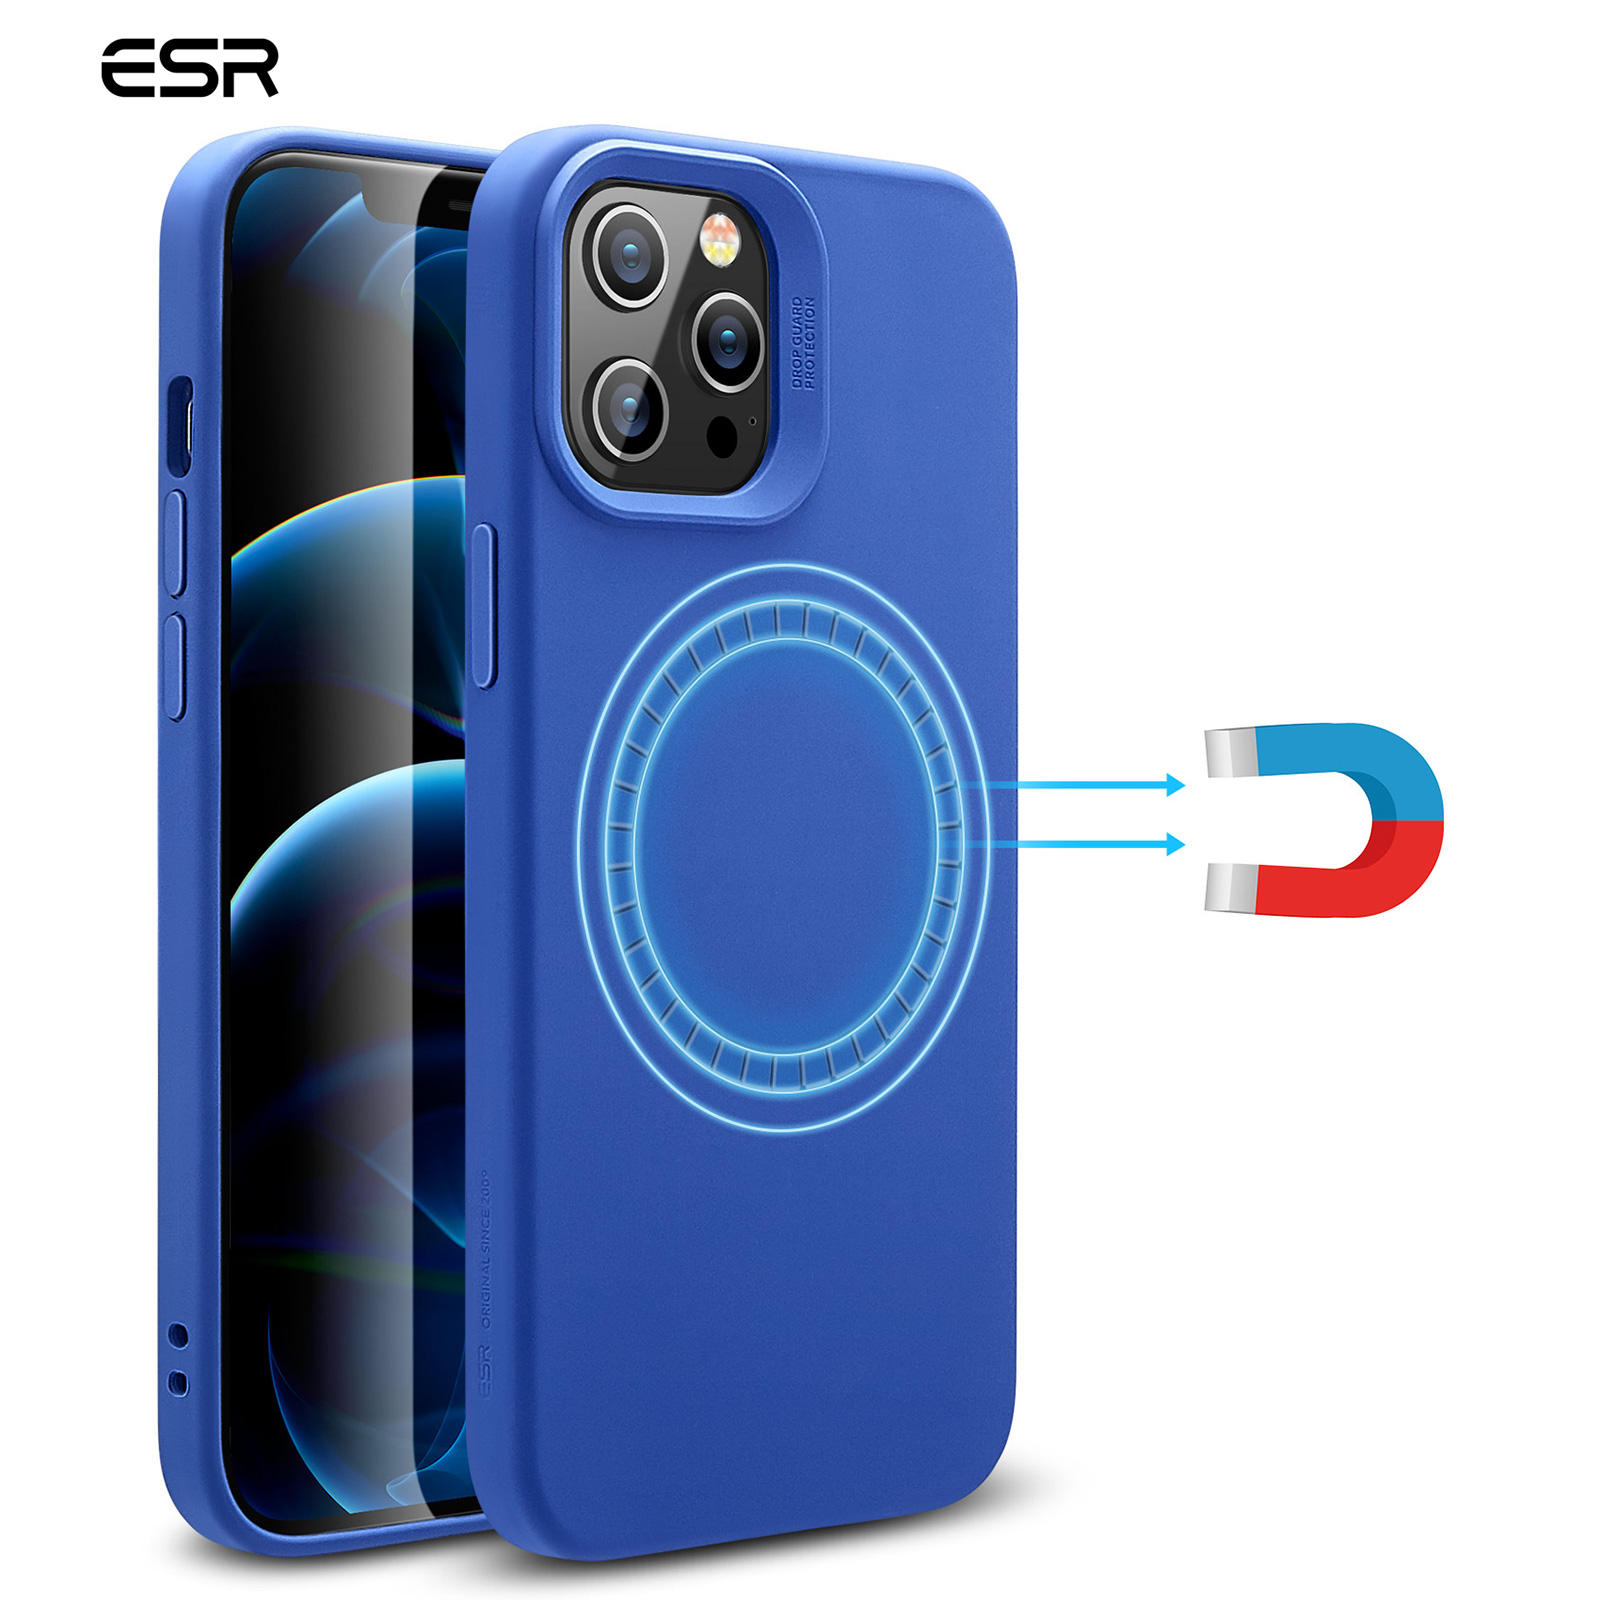 ESR Supports MagSafe/Wireless Charging Silicone Case For iPhone 12 mini with HaloLock Magnetic Ring